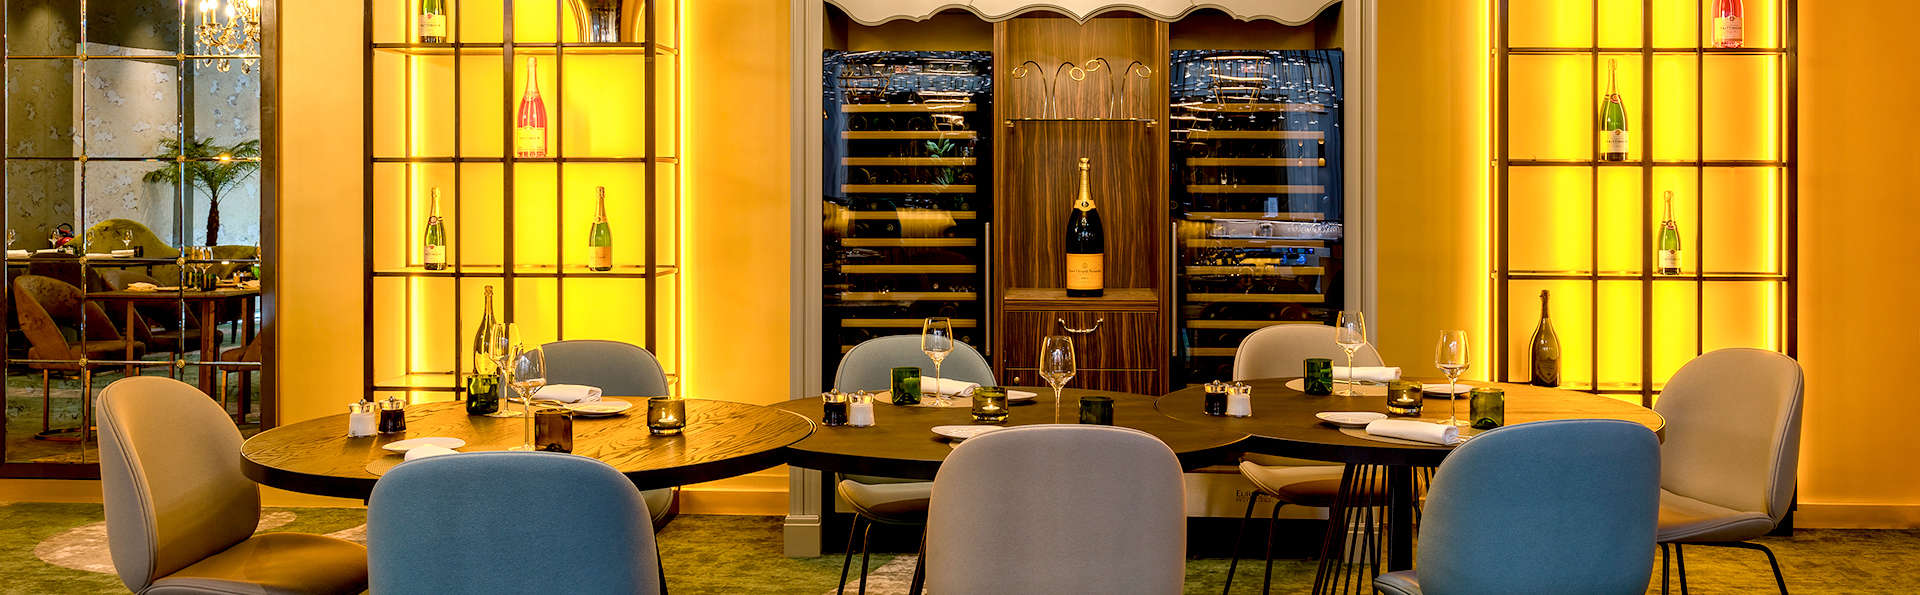 Hotel Le Louis, Versailles Château - MGallery - EDIT_NEW_RESTAURANT3.jpg